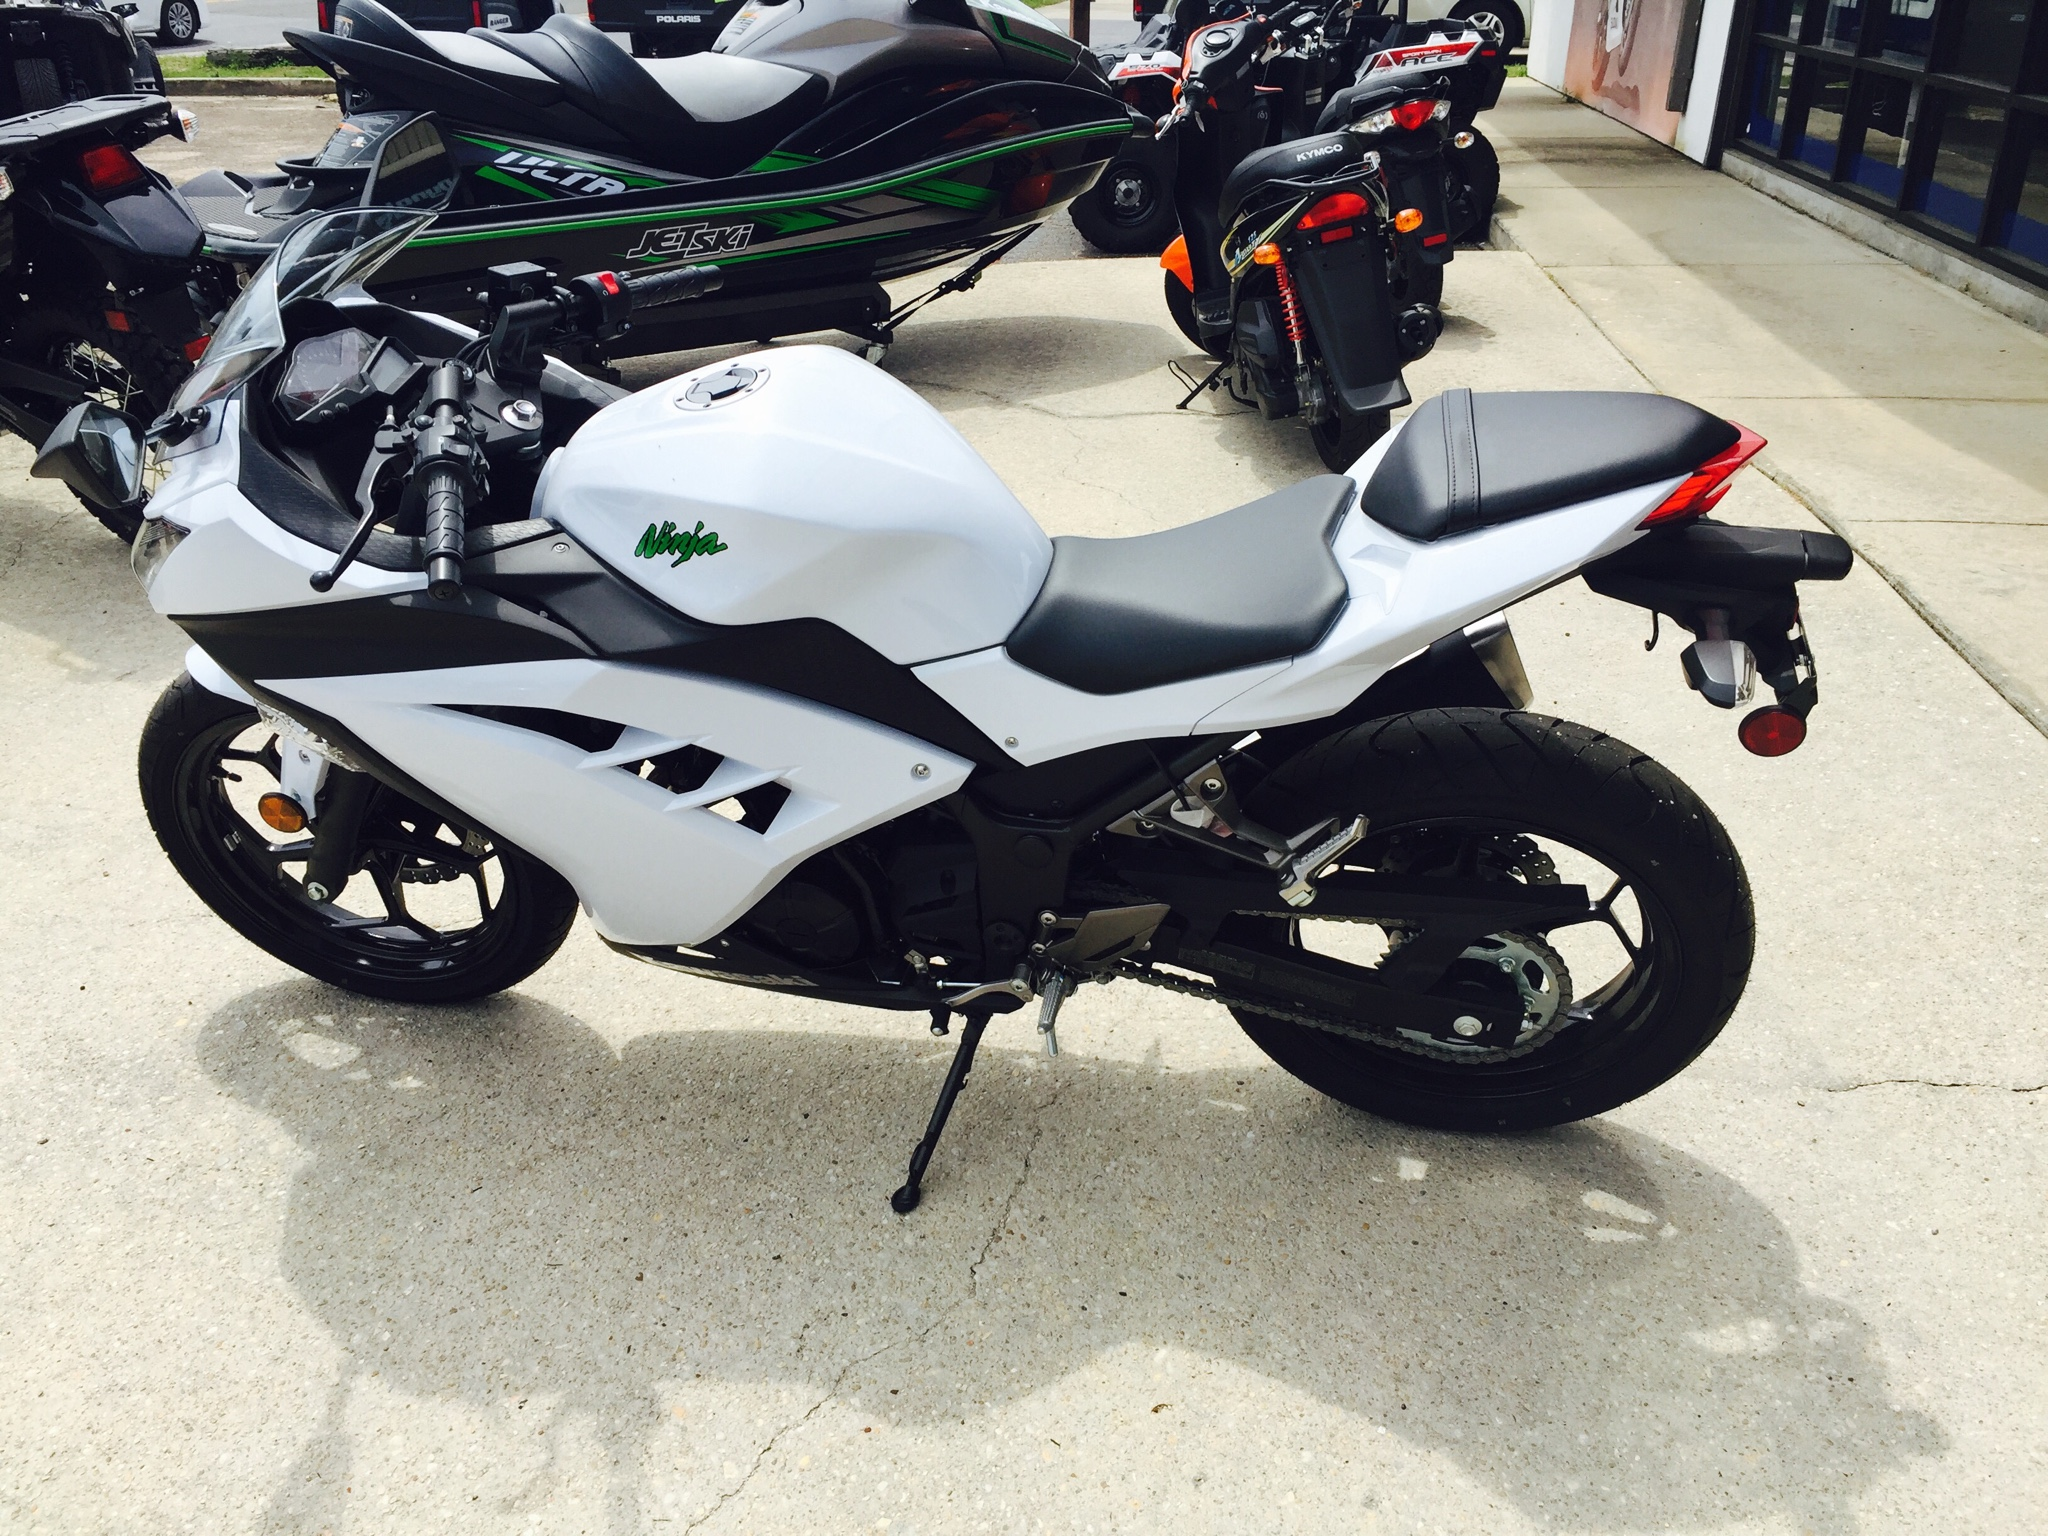 My Girl 2015 Ninja 300 Kawasaki Ninja 300 Forum